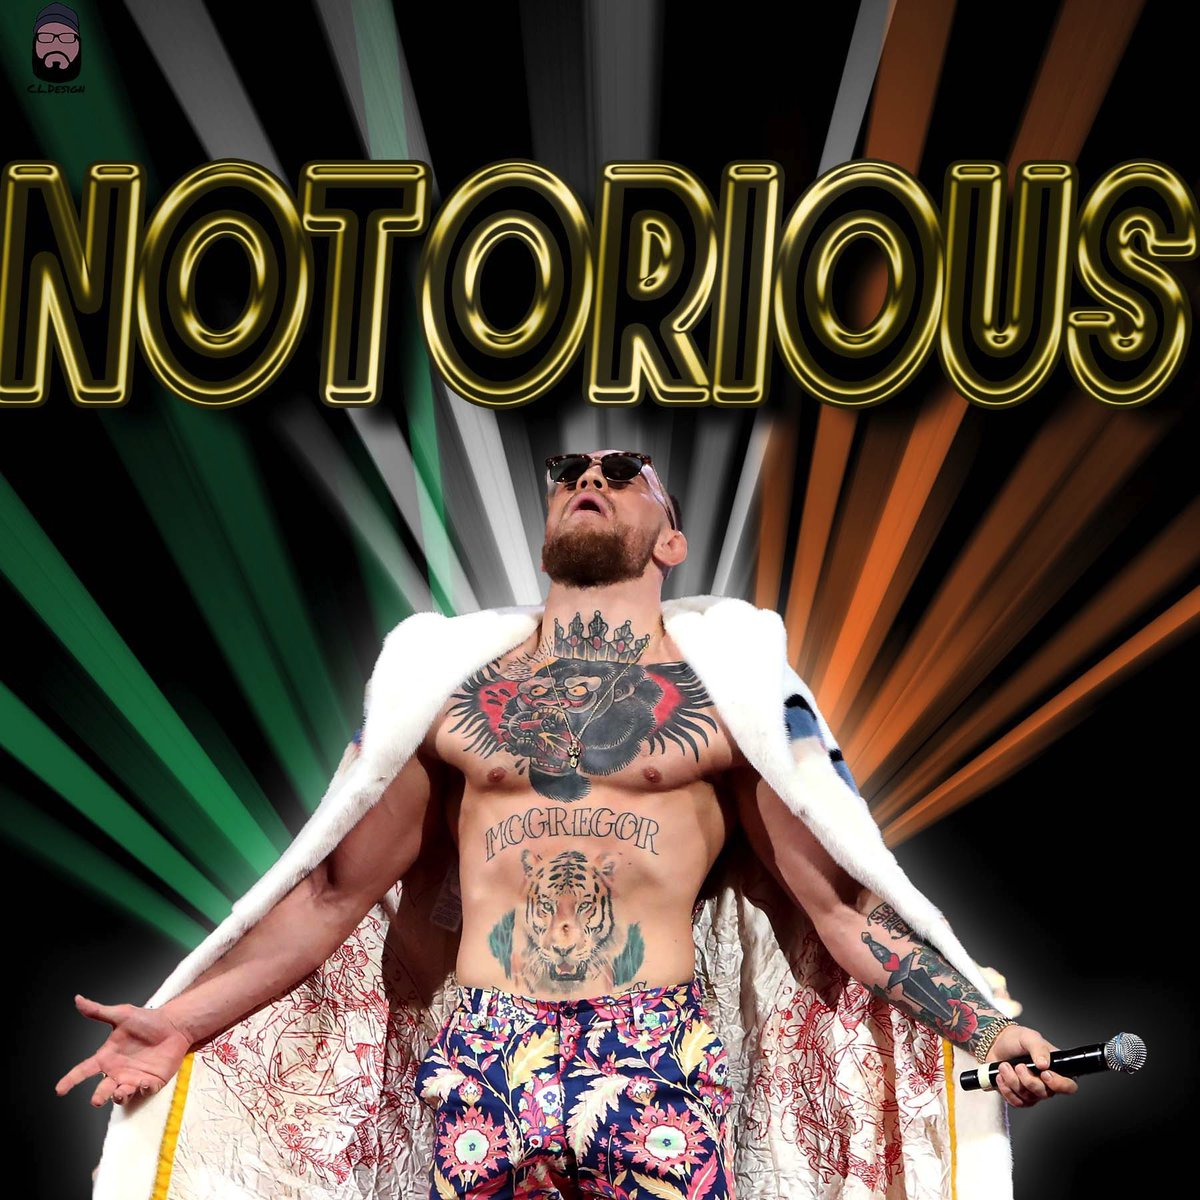 Win or Lose @TheNotoriousMMA is an animal , next fight I'm sure he'll be back with a vengeance 🥊   #notorious #mma #ufc #connor #connormcgregor #connormcgregor🇮🇪 #connormcgregoredit #mcgregor #mcgregorvskhabib #mcgregorvspoirier2 #photoshop #danawhite #easports #ufc3 #ireland